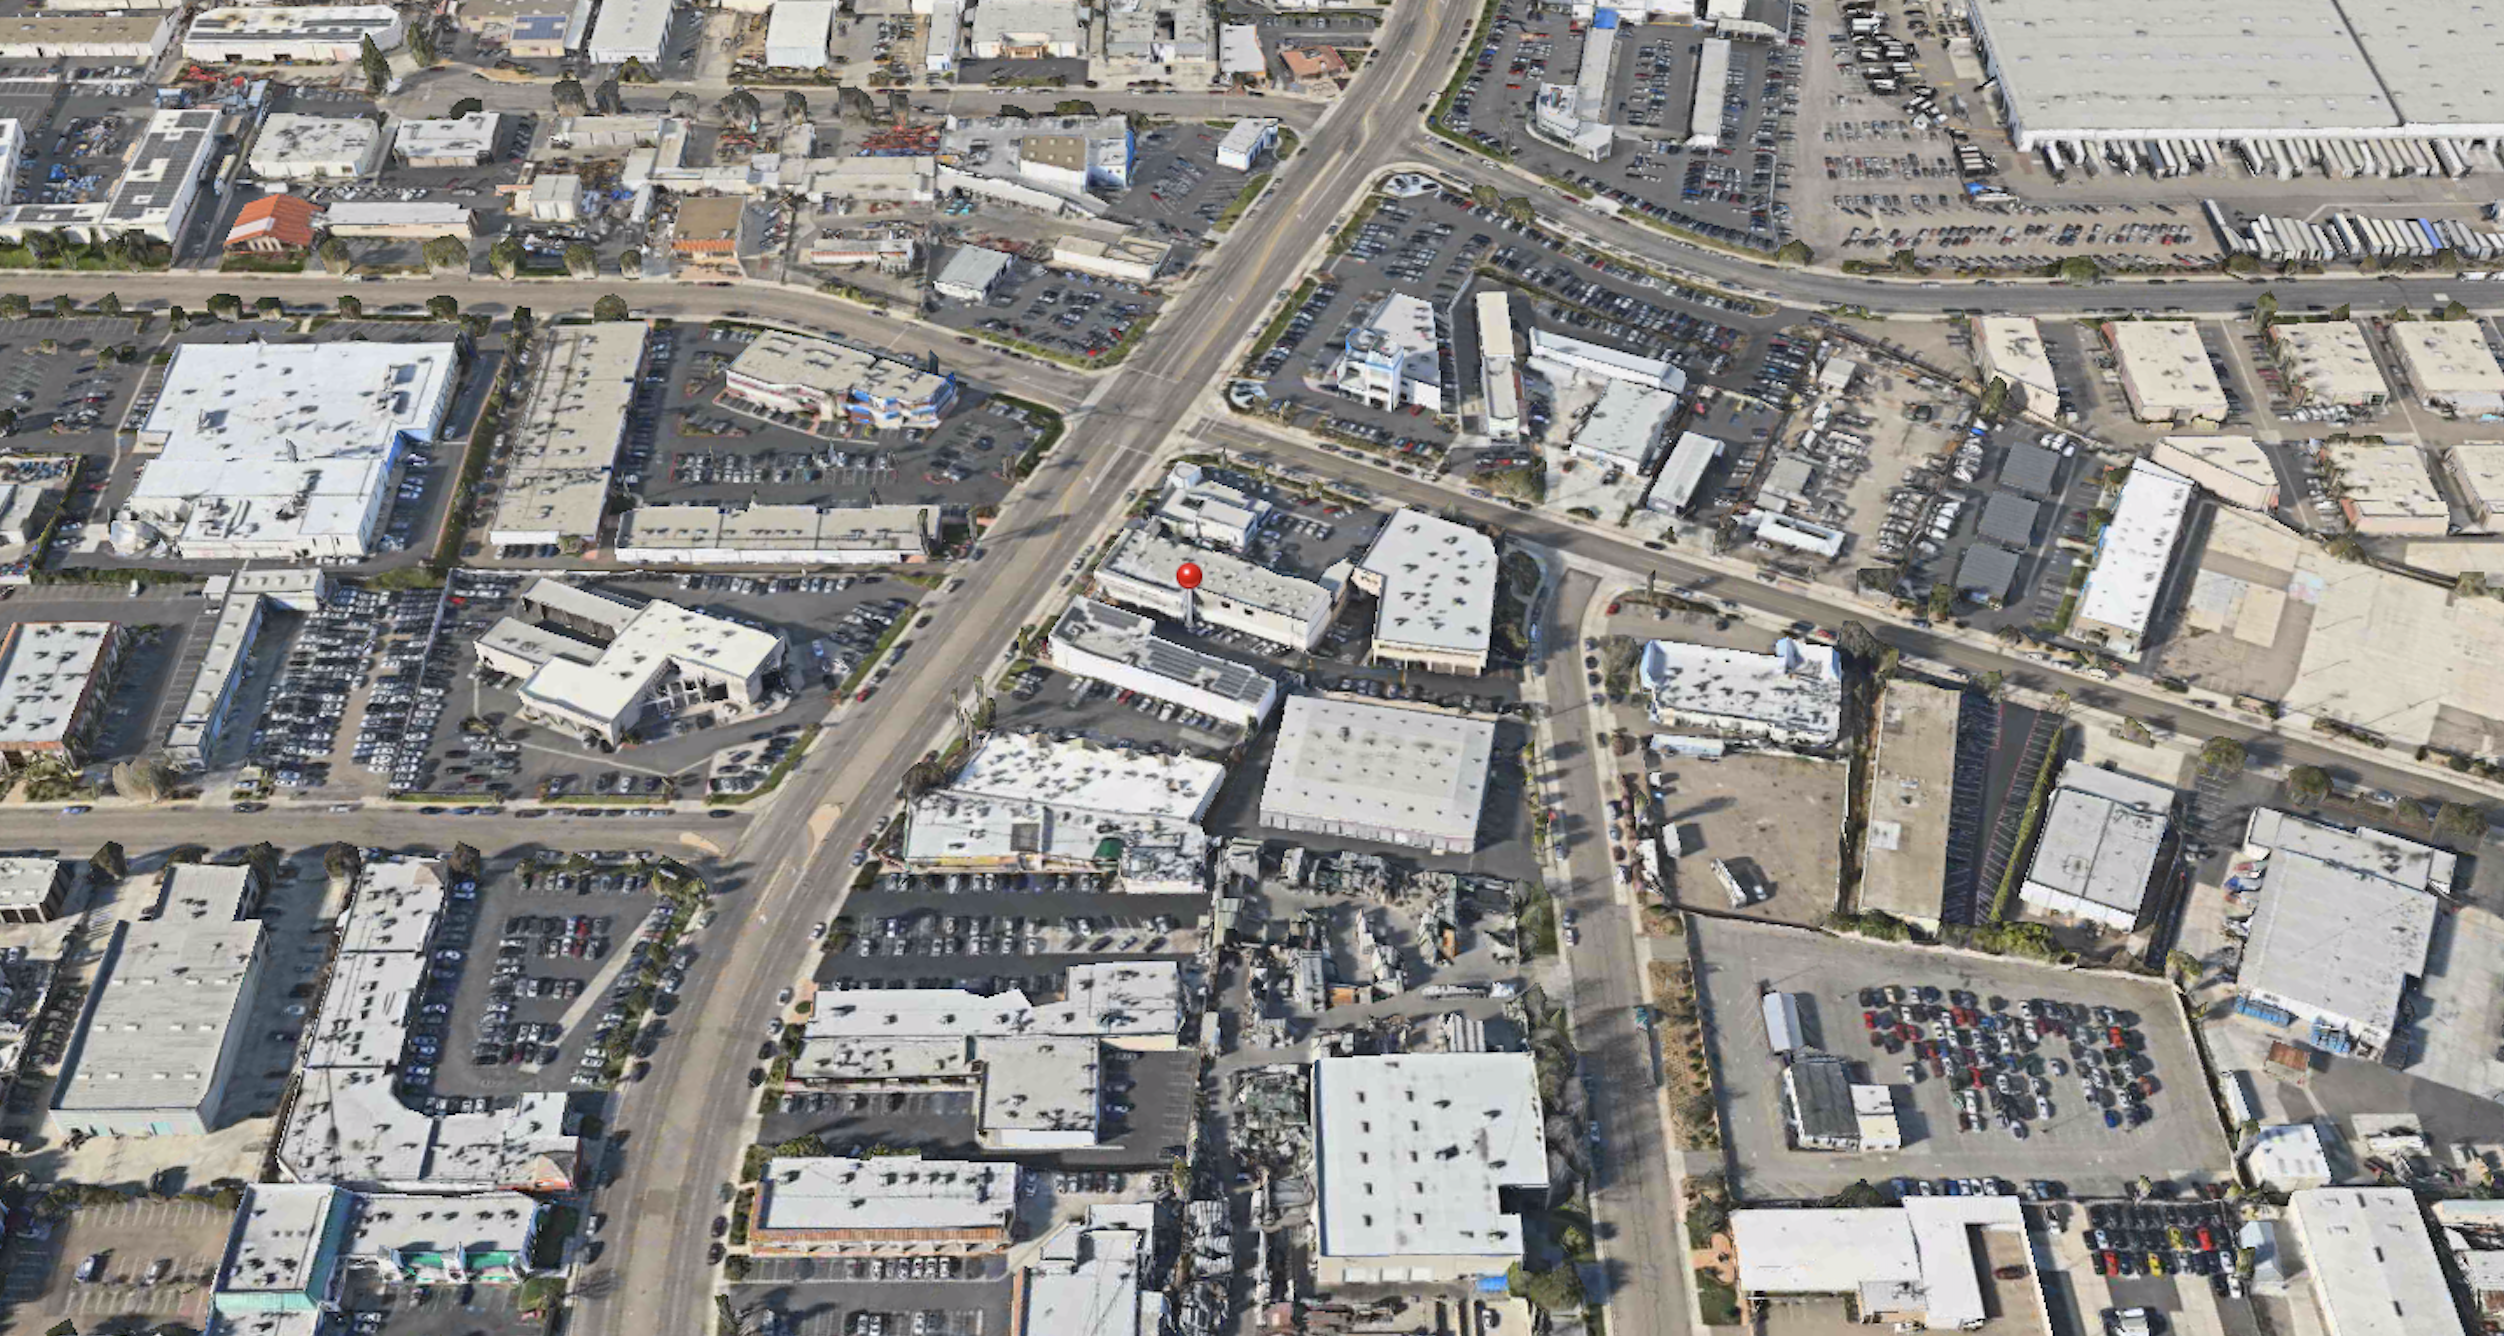 A San Diego Business Corridor Lacking PV, Except For GreenSource Project